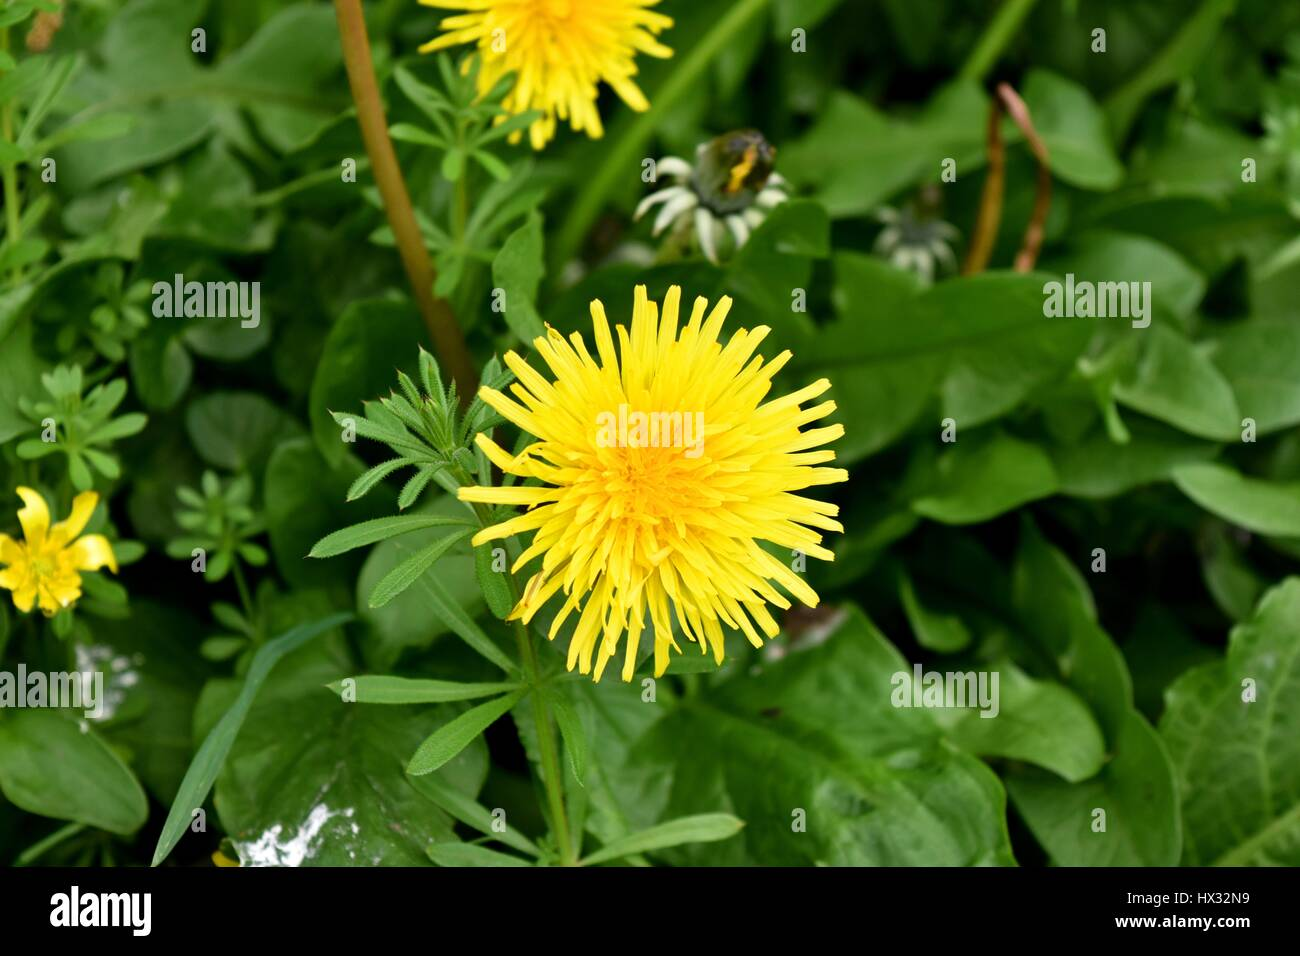 A close up of the flower of the common dandelion (Taraxacum officinale). A member of the Asteraceae (Compositae) - Stock Image